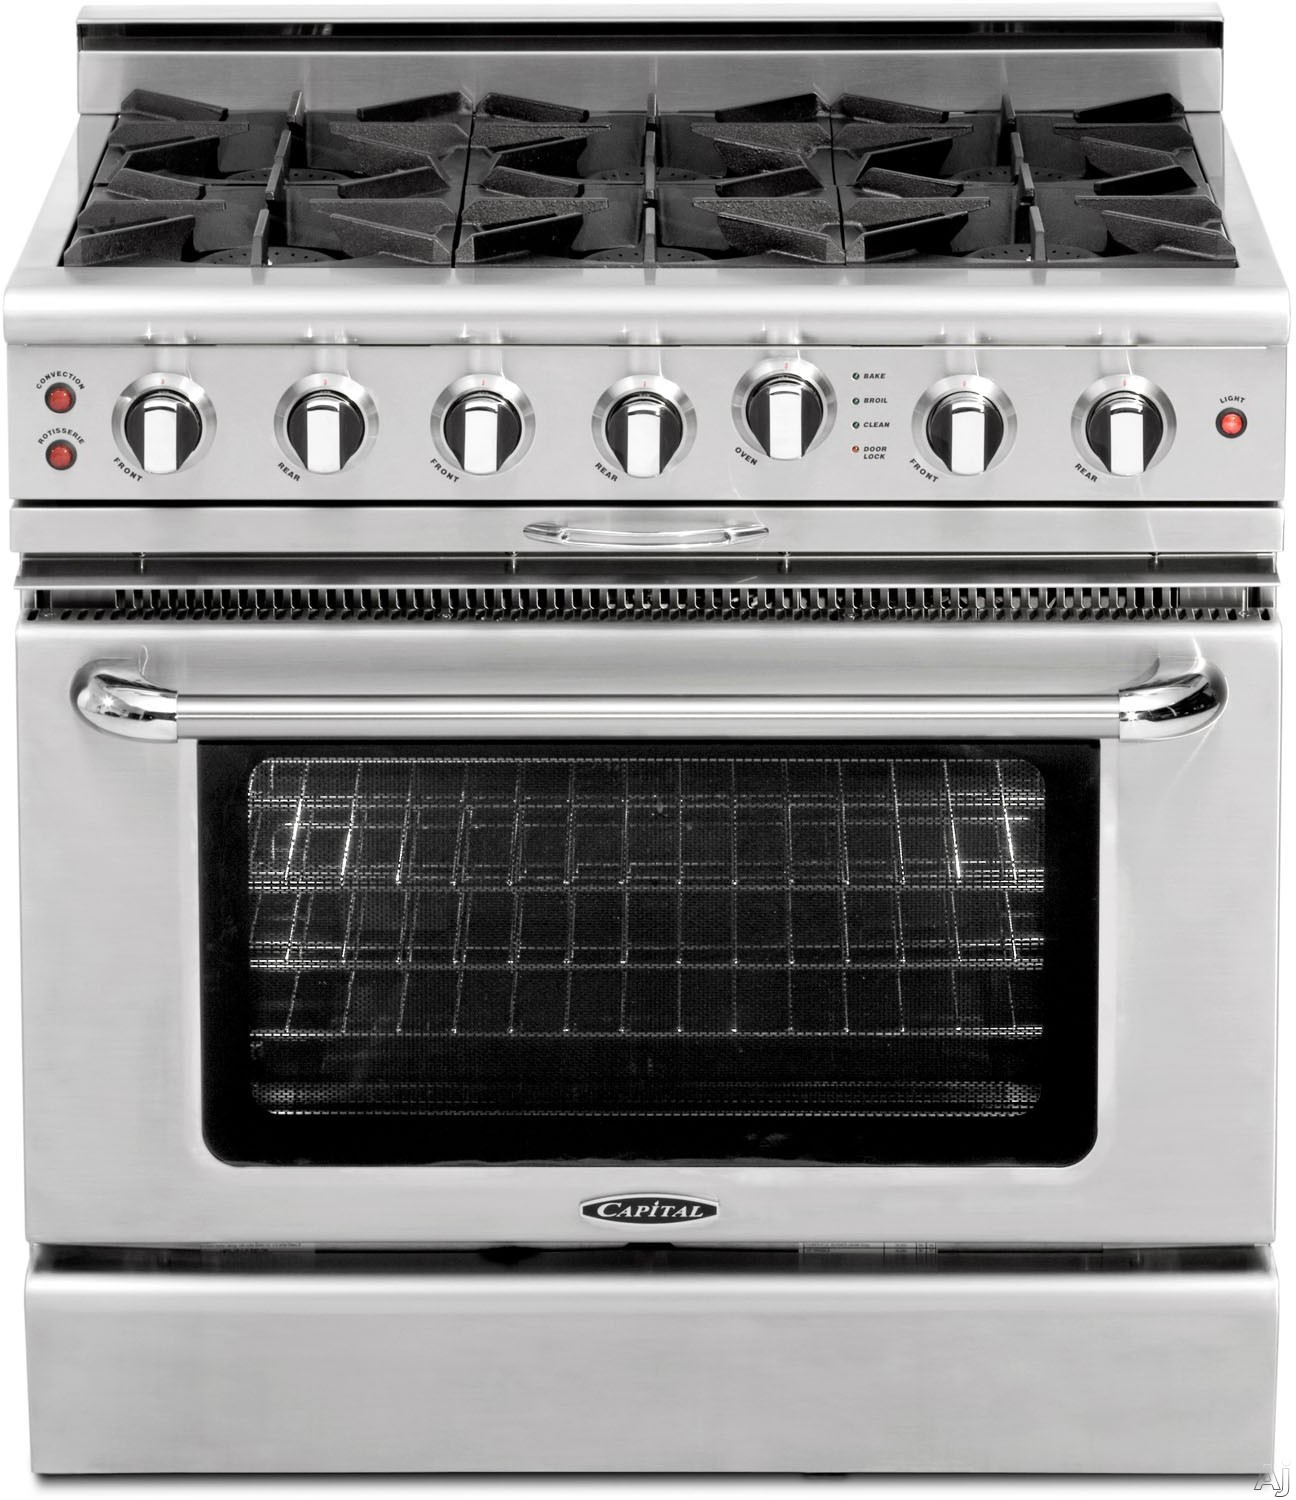 "Capital Culinarian Series CGSR366L 36 Inch Pro-Style Gas Range with 6 Open Burners, EZ-Glidesâ""¢ Drip Tray, Flex-Rollâ""¢ Oven Racks, Self Clean, Inrared Broiler, Moto-Rotisâ""¢ Rotisserie and 4.6 cu. ft. Convection Oven: Stainless Steel Liquid Propane CGS"